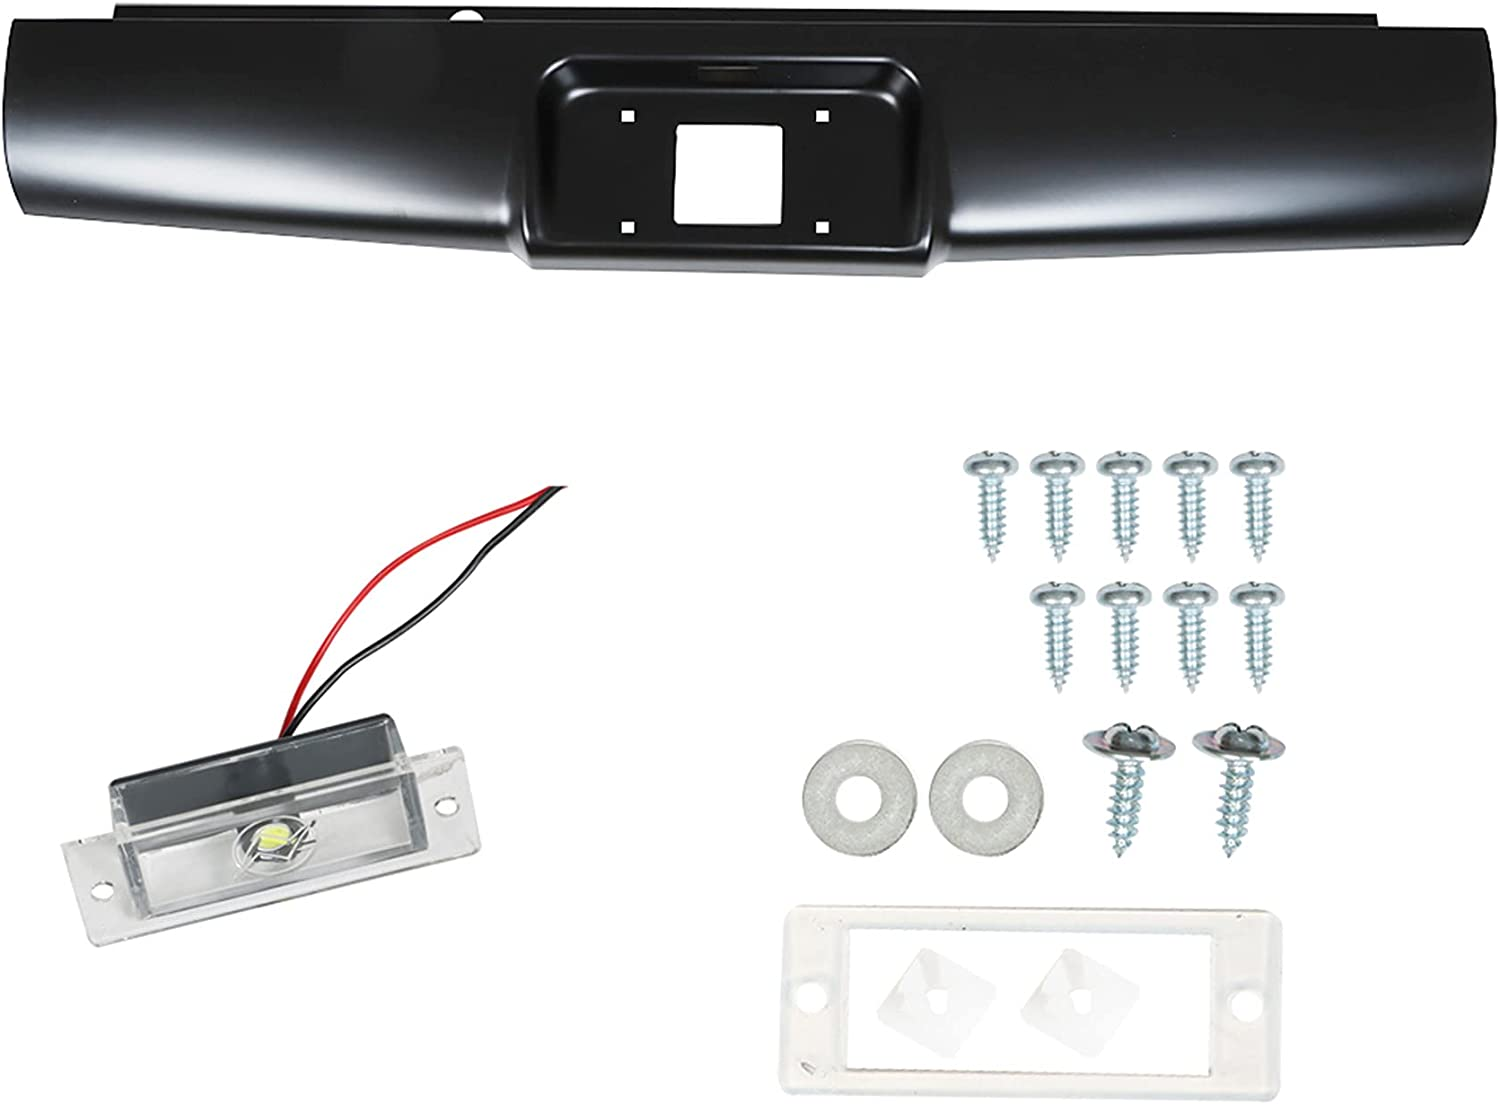 RainMan 70% OFF Outlet S Rear Steel Bumper Roll Bargain Colorad Pan for Chevy 2004-2012